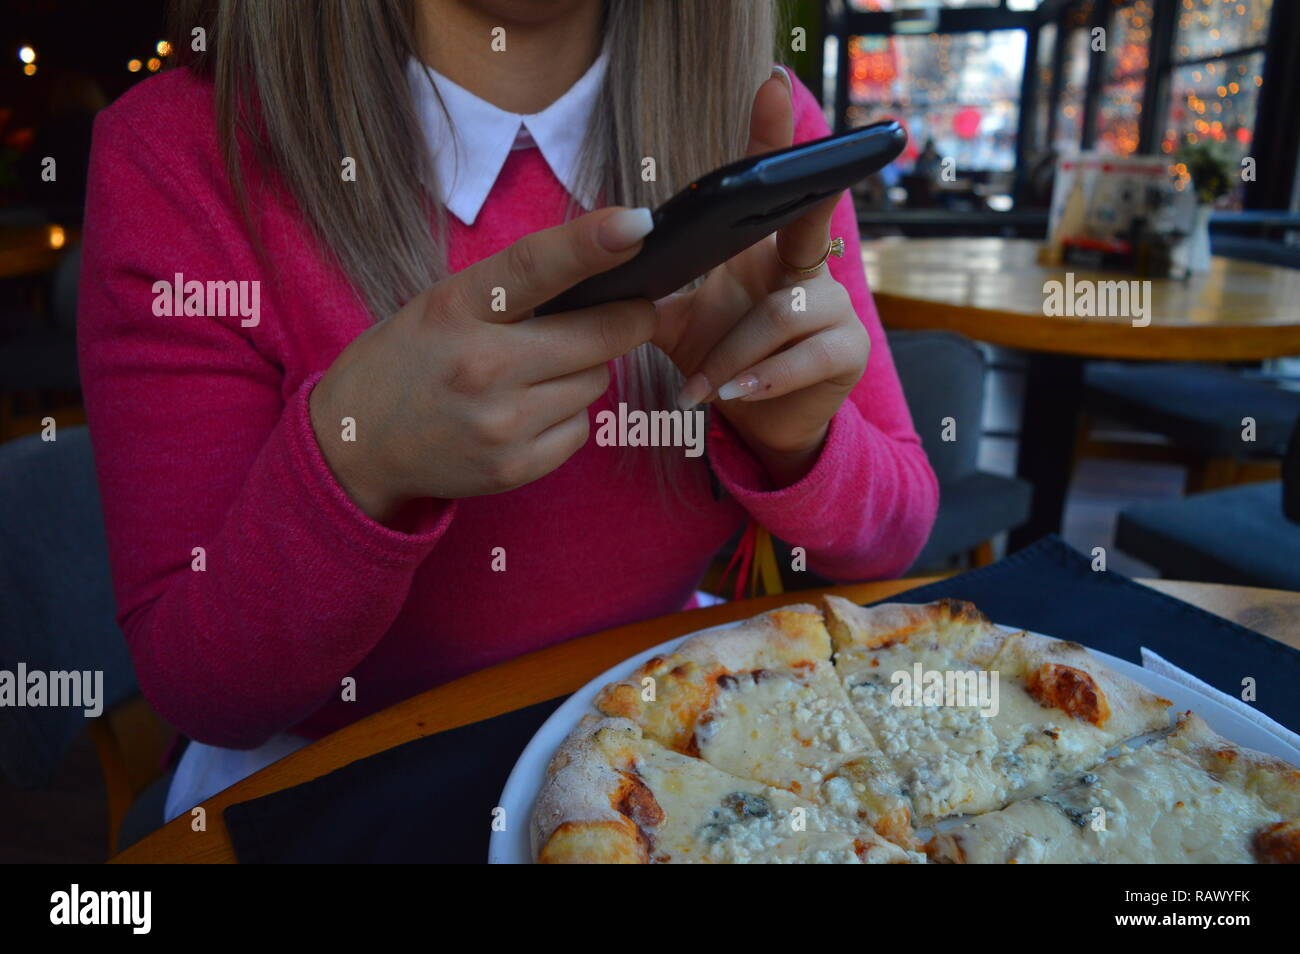 Girl photographing her pizza at a restaurant - Stock Image